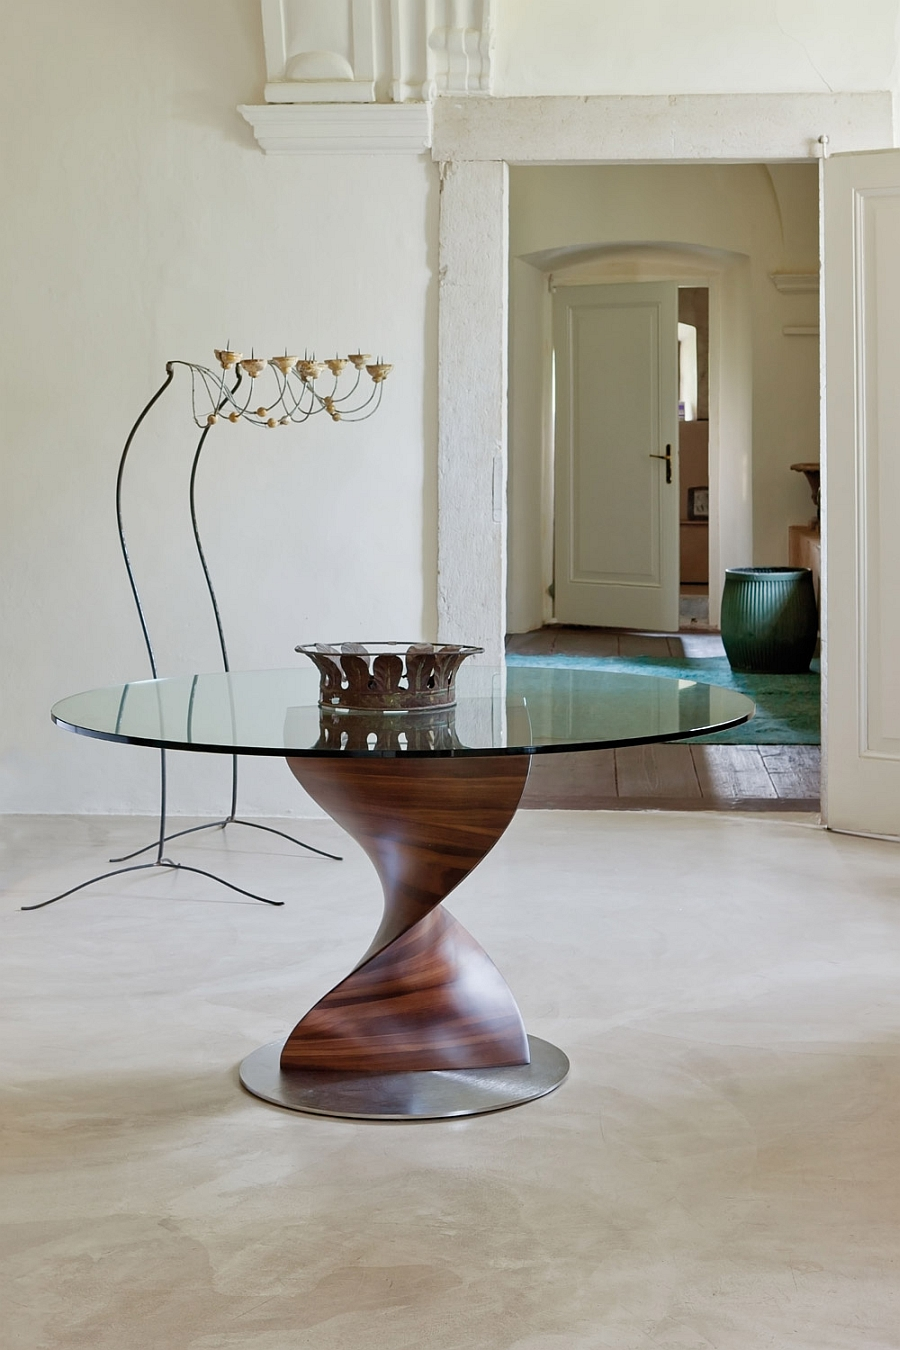 Gorgeous dining table with a unique sculptural base